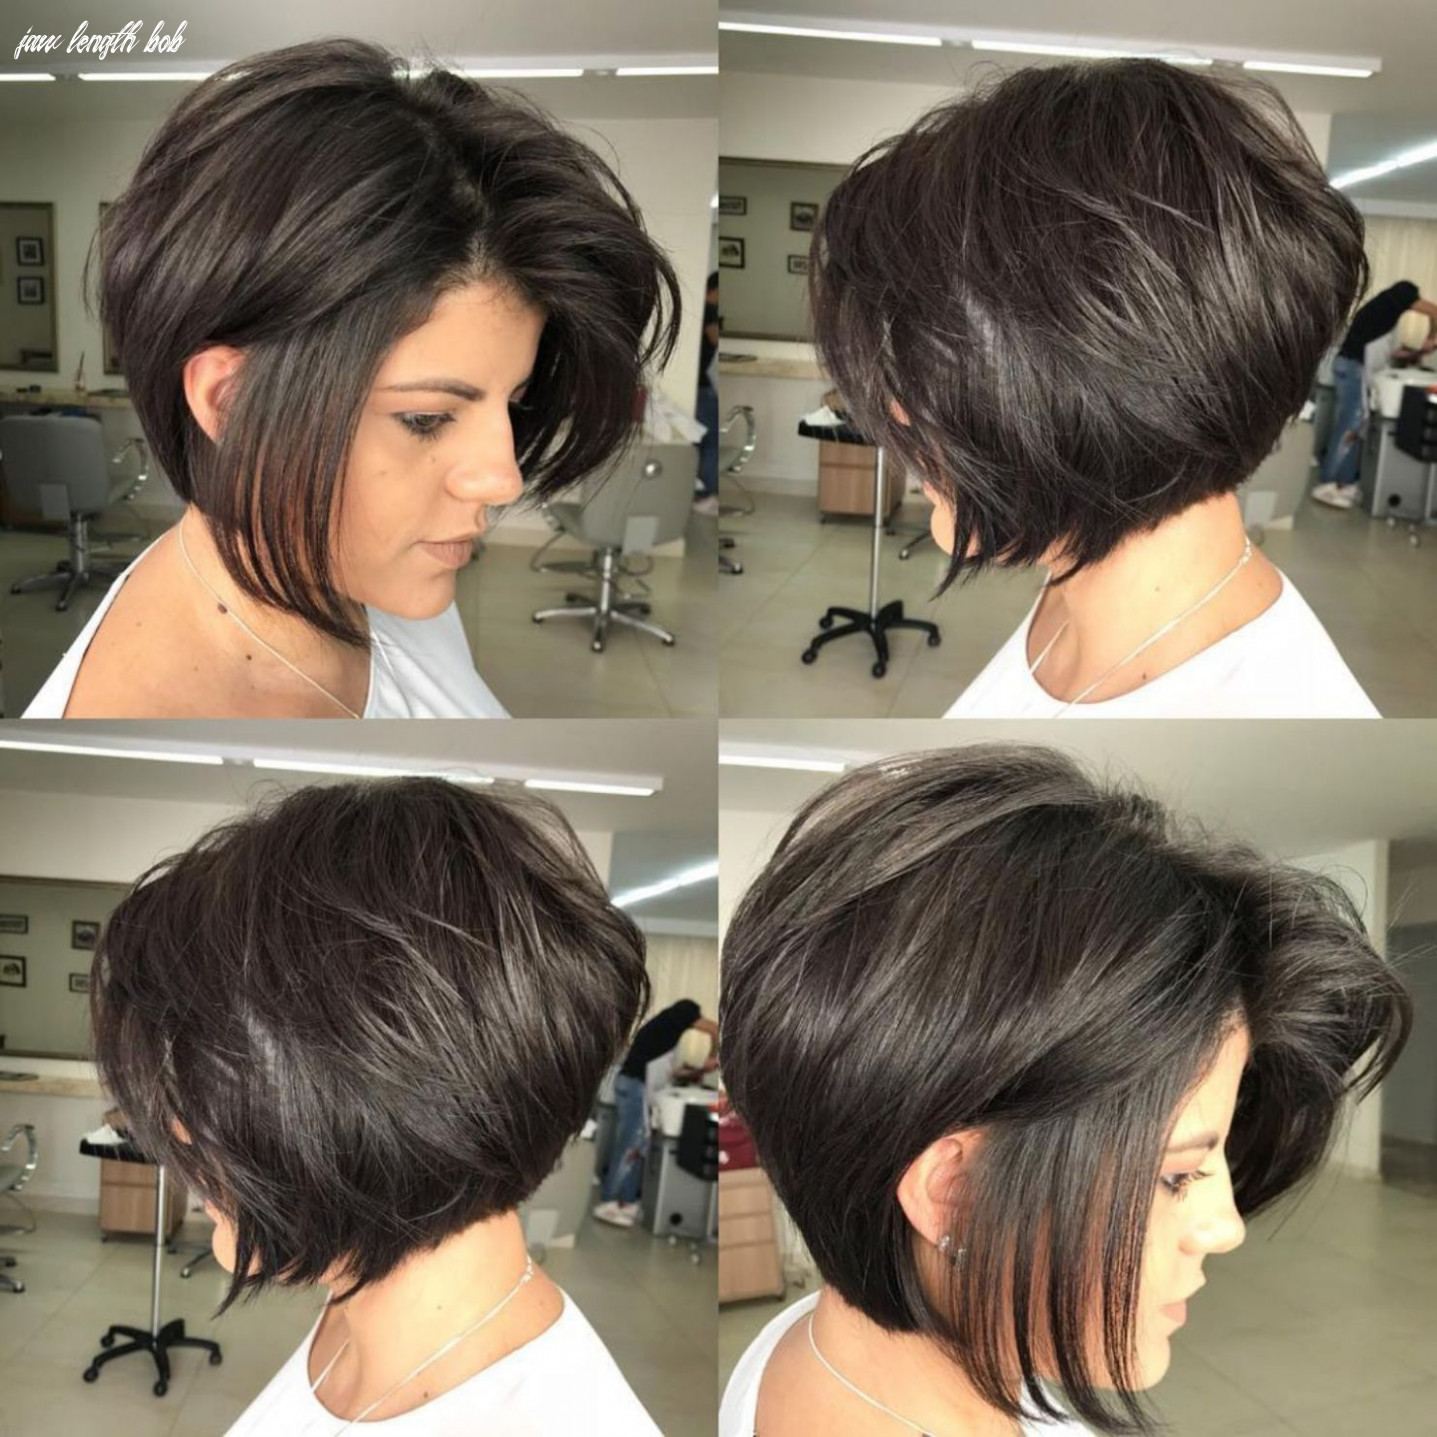 10 trendy inverted bob haircuts | haircut for thick hair, inverted